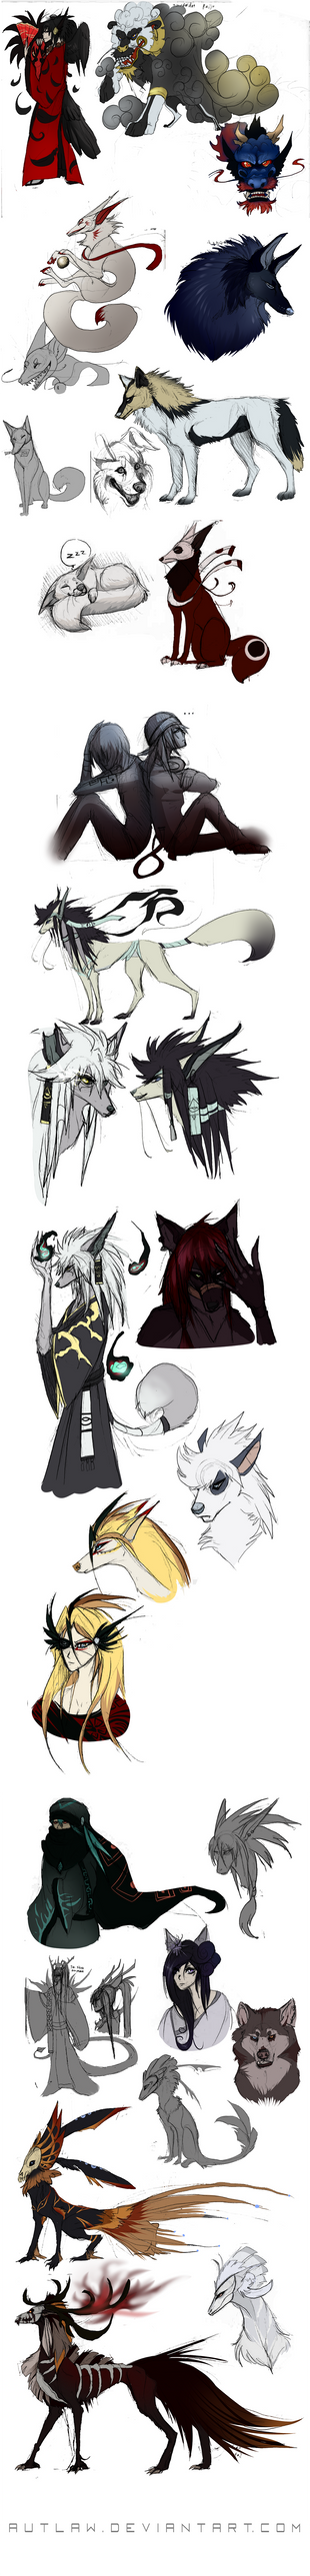 Varied sketches by Autlaw